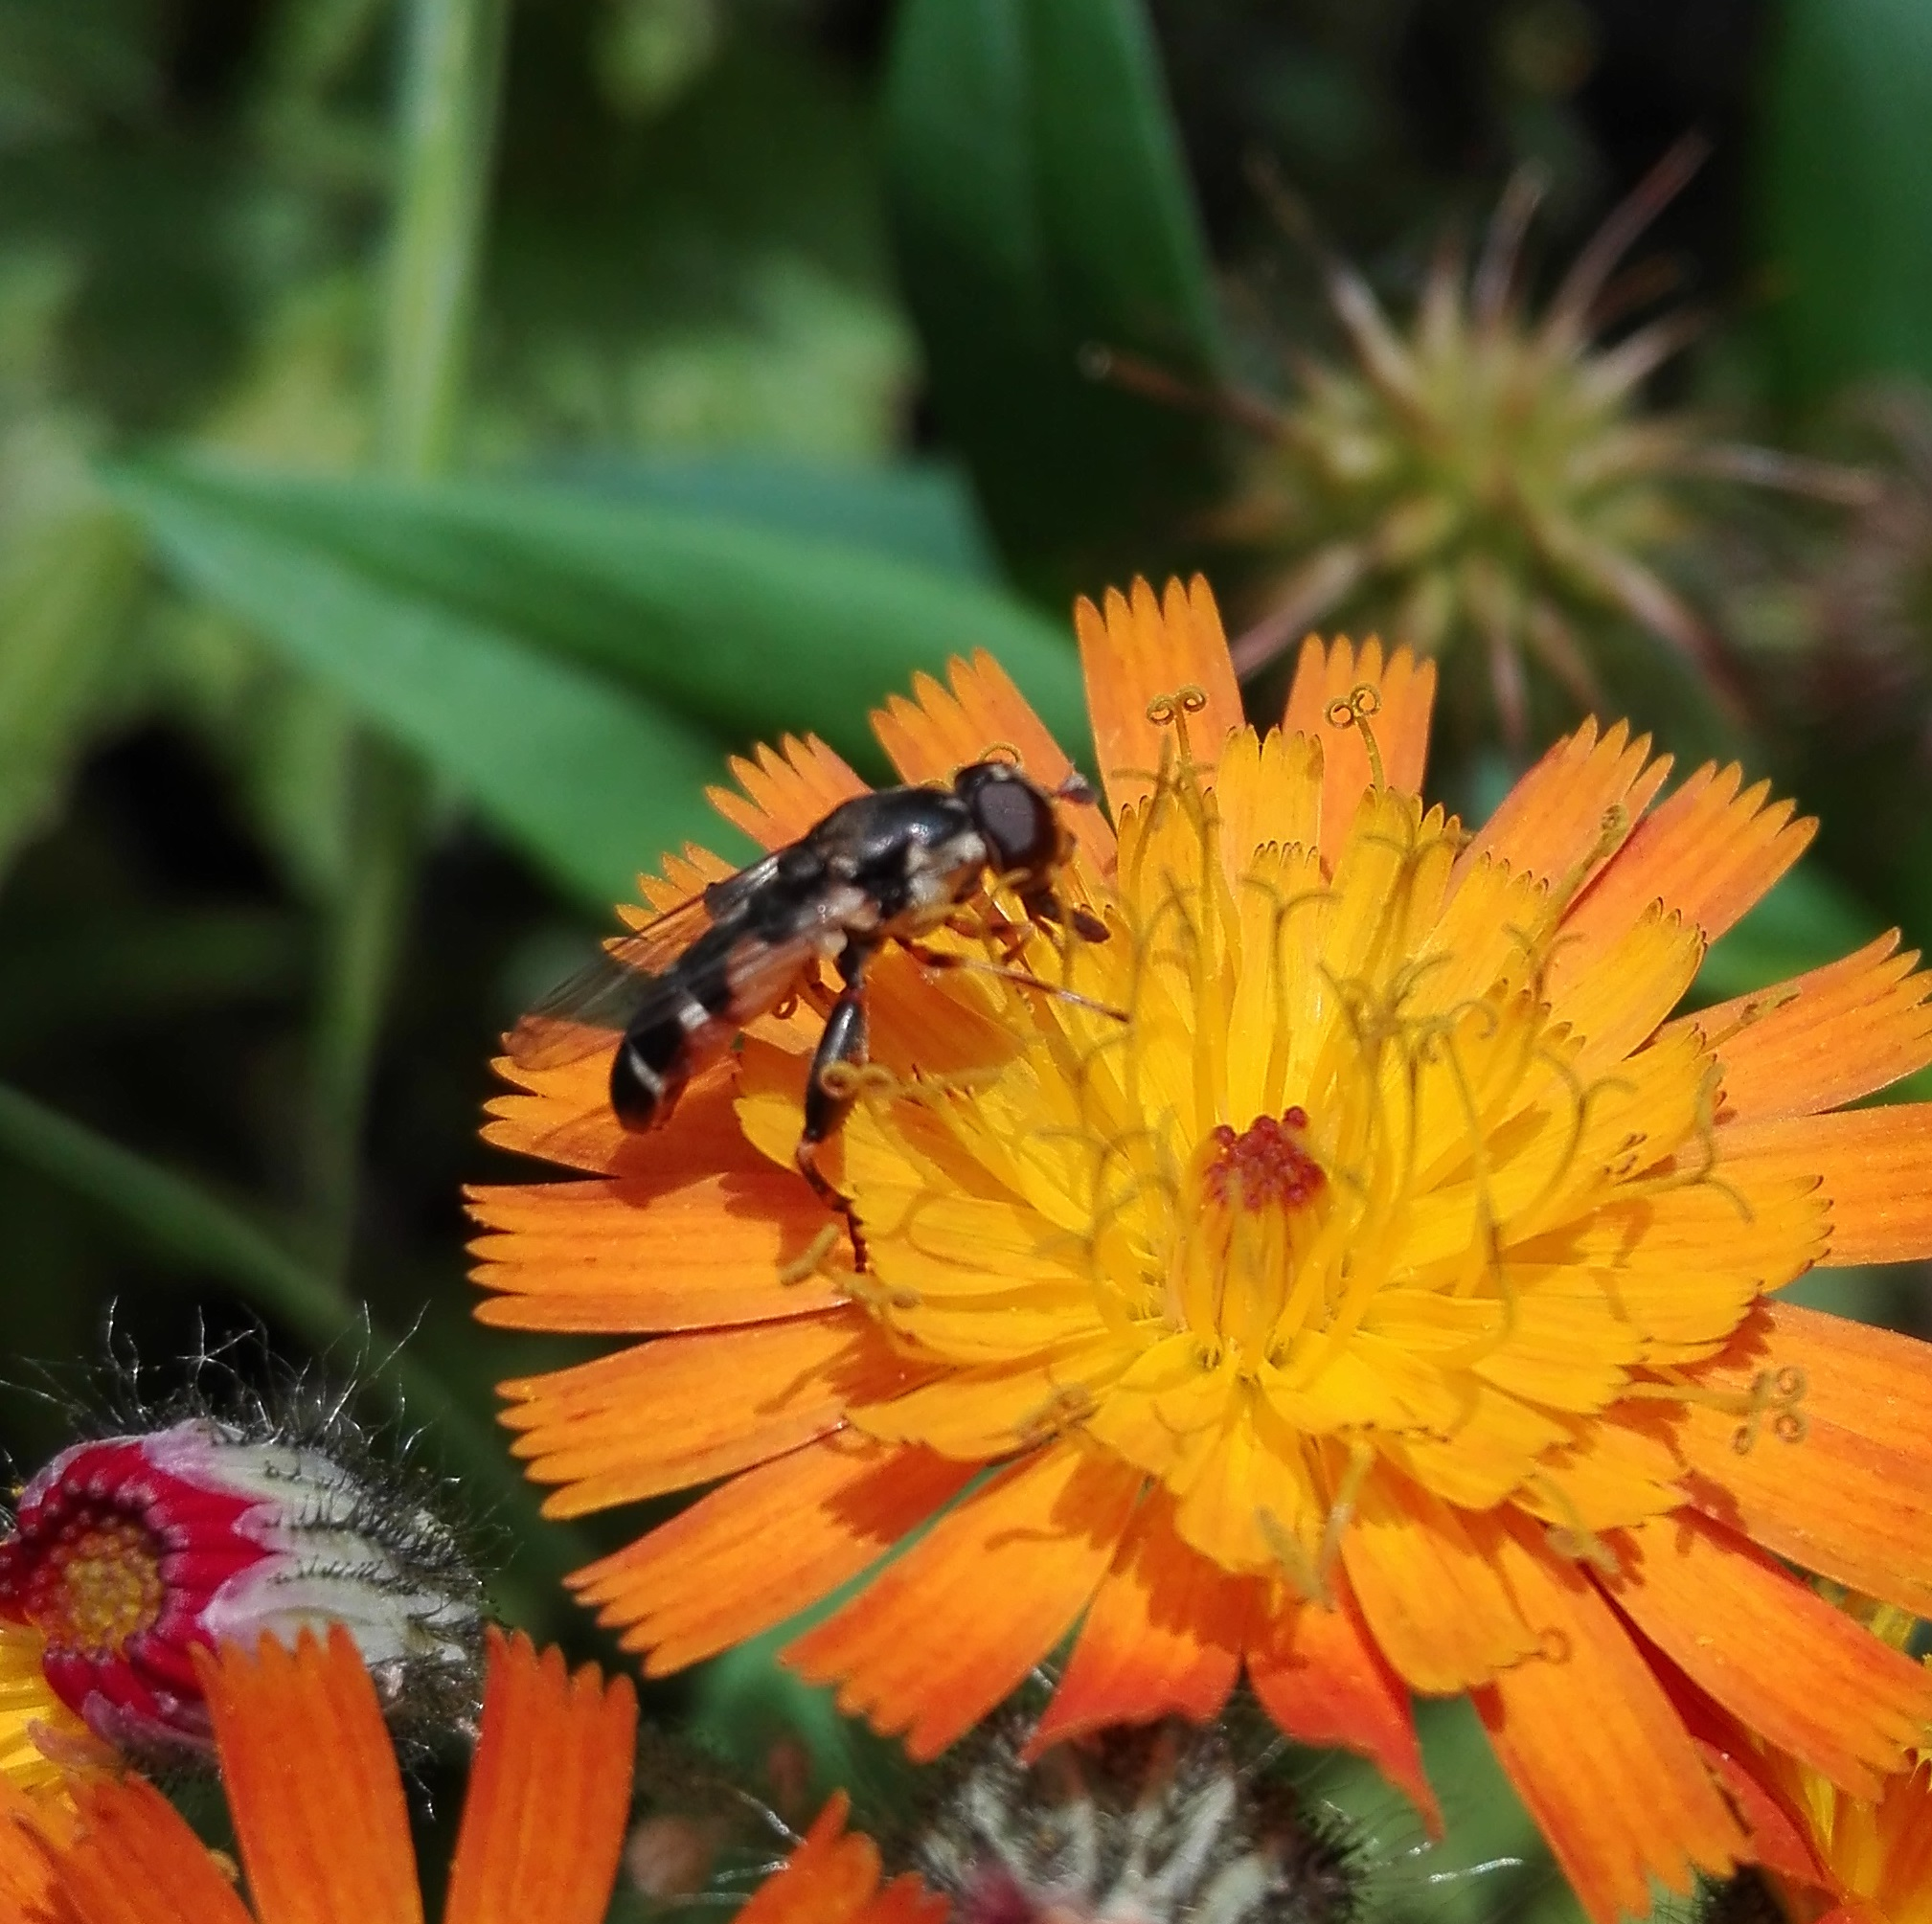 #524 Thick-legged Hoverfly (Syritta pipiens)